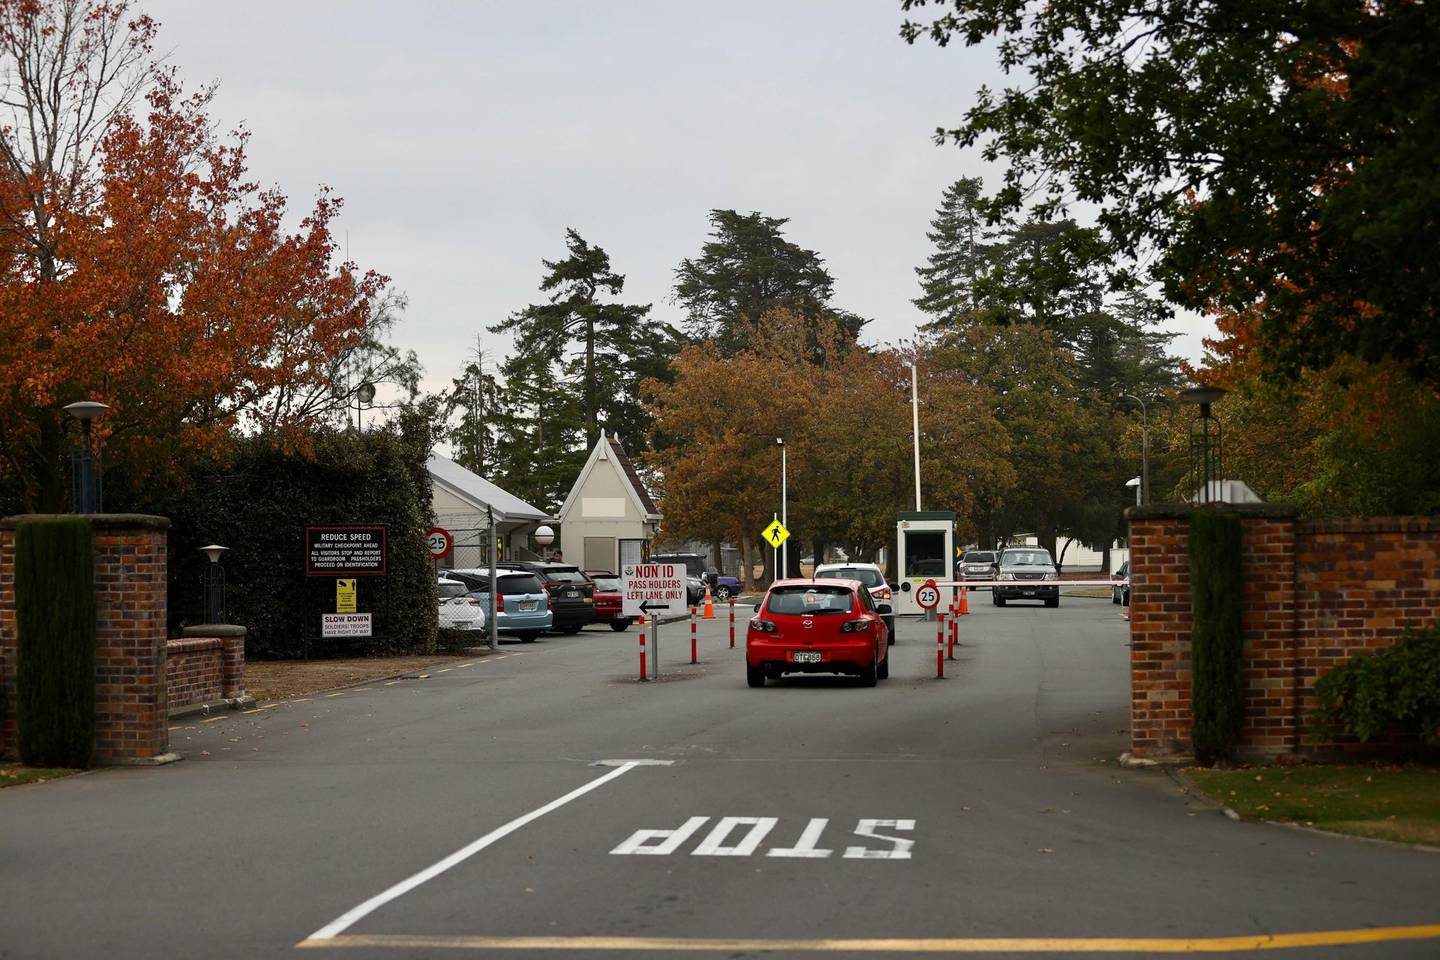 The court martial was held at Burnham Military Camp outside Christchurch. Photo: George Heard